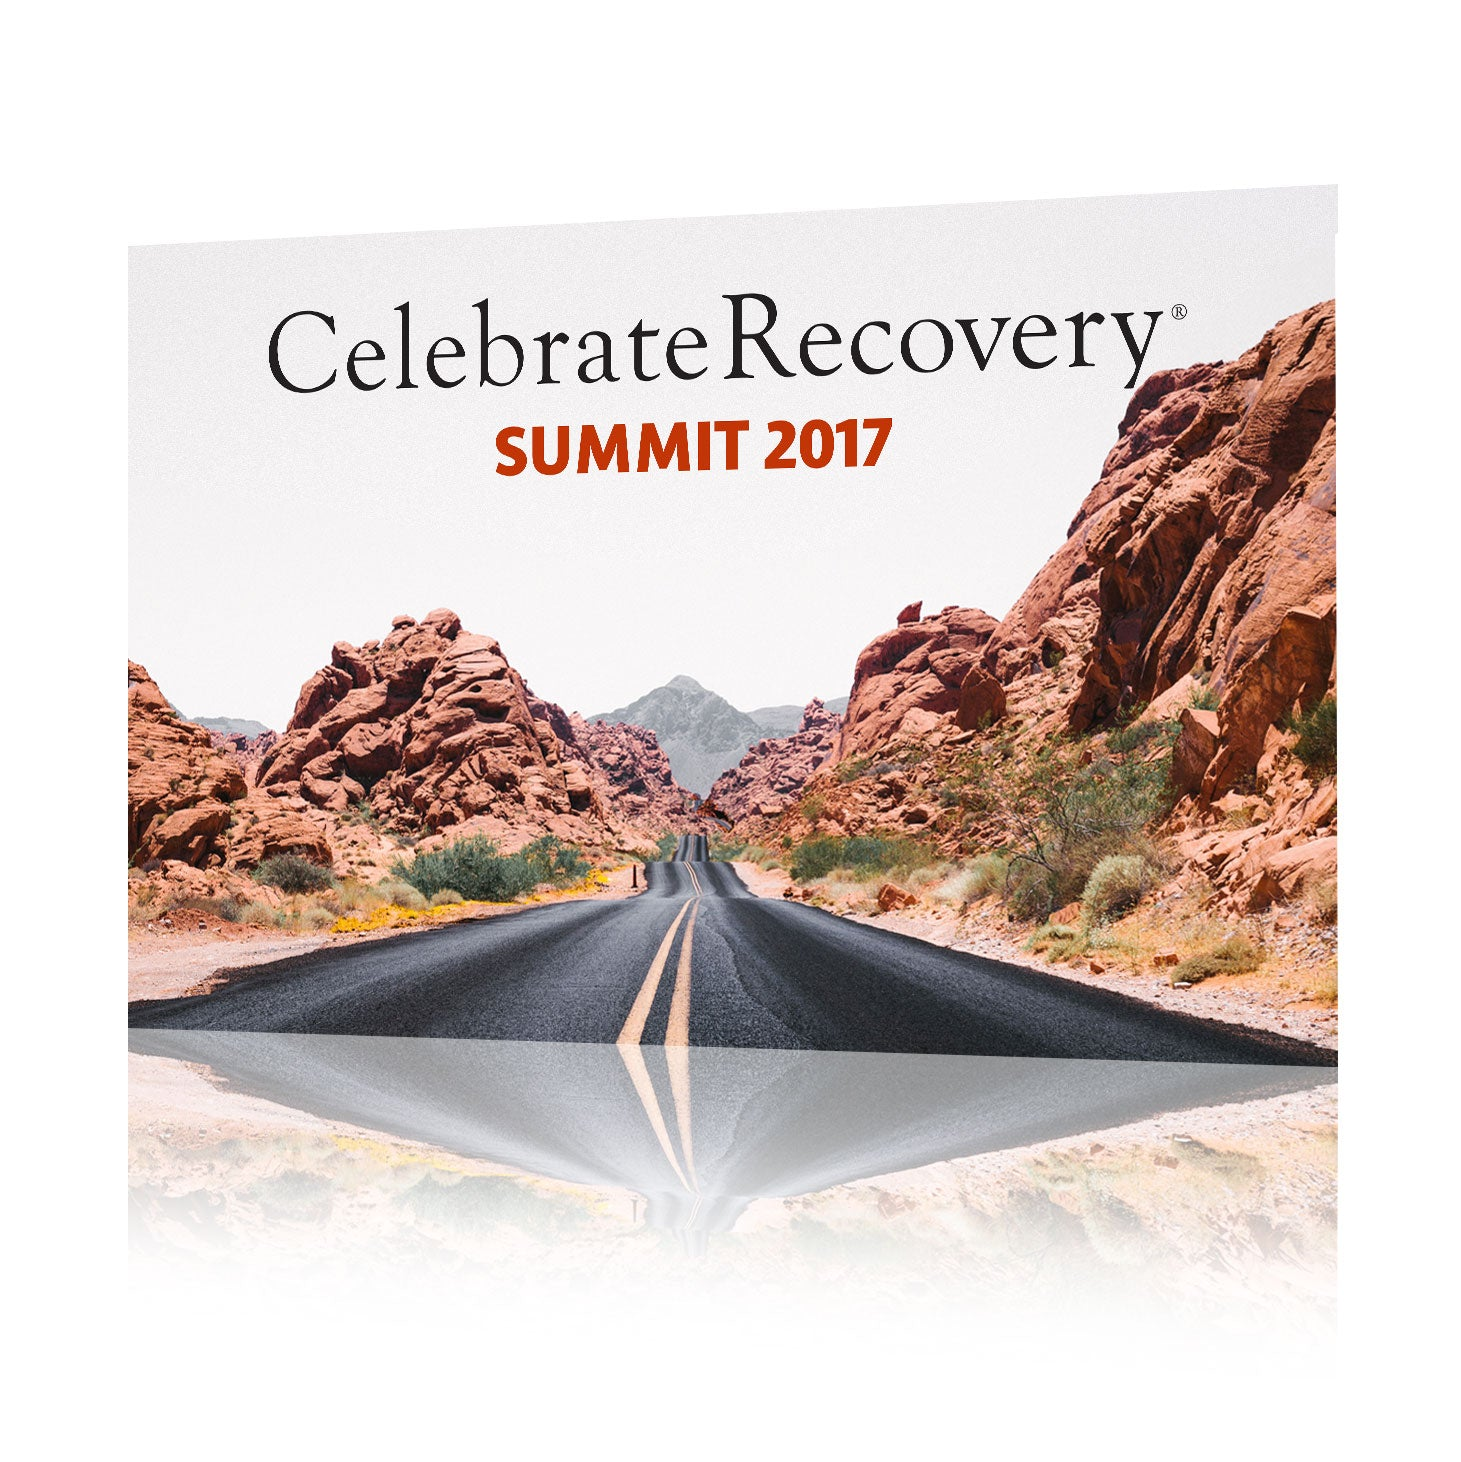 2017 Celebrate Recovery Summit: Dr. Henry Cloud